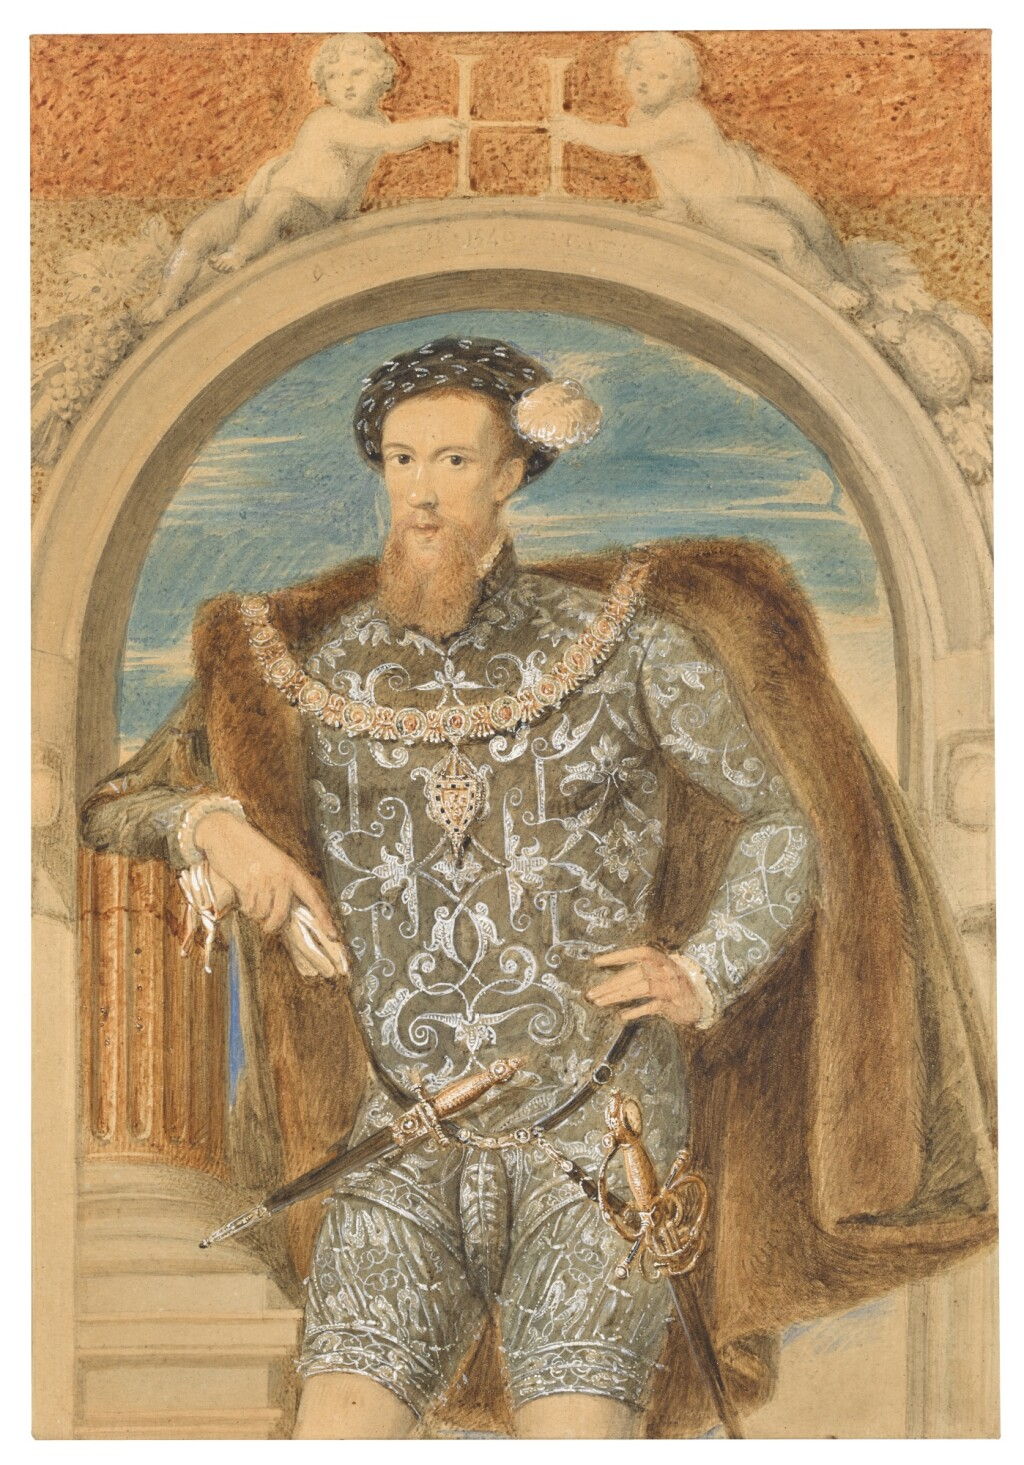 WILLIAM DERBY | Portrait of Henry Howard, Earl of Surrey (circa 1517-1547)